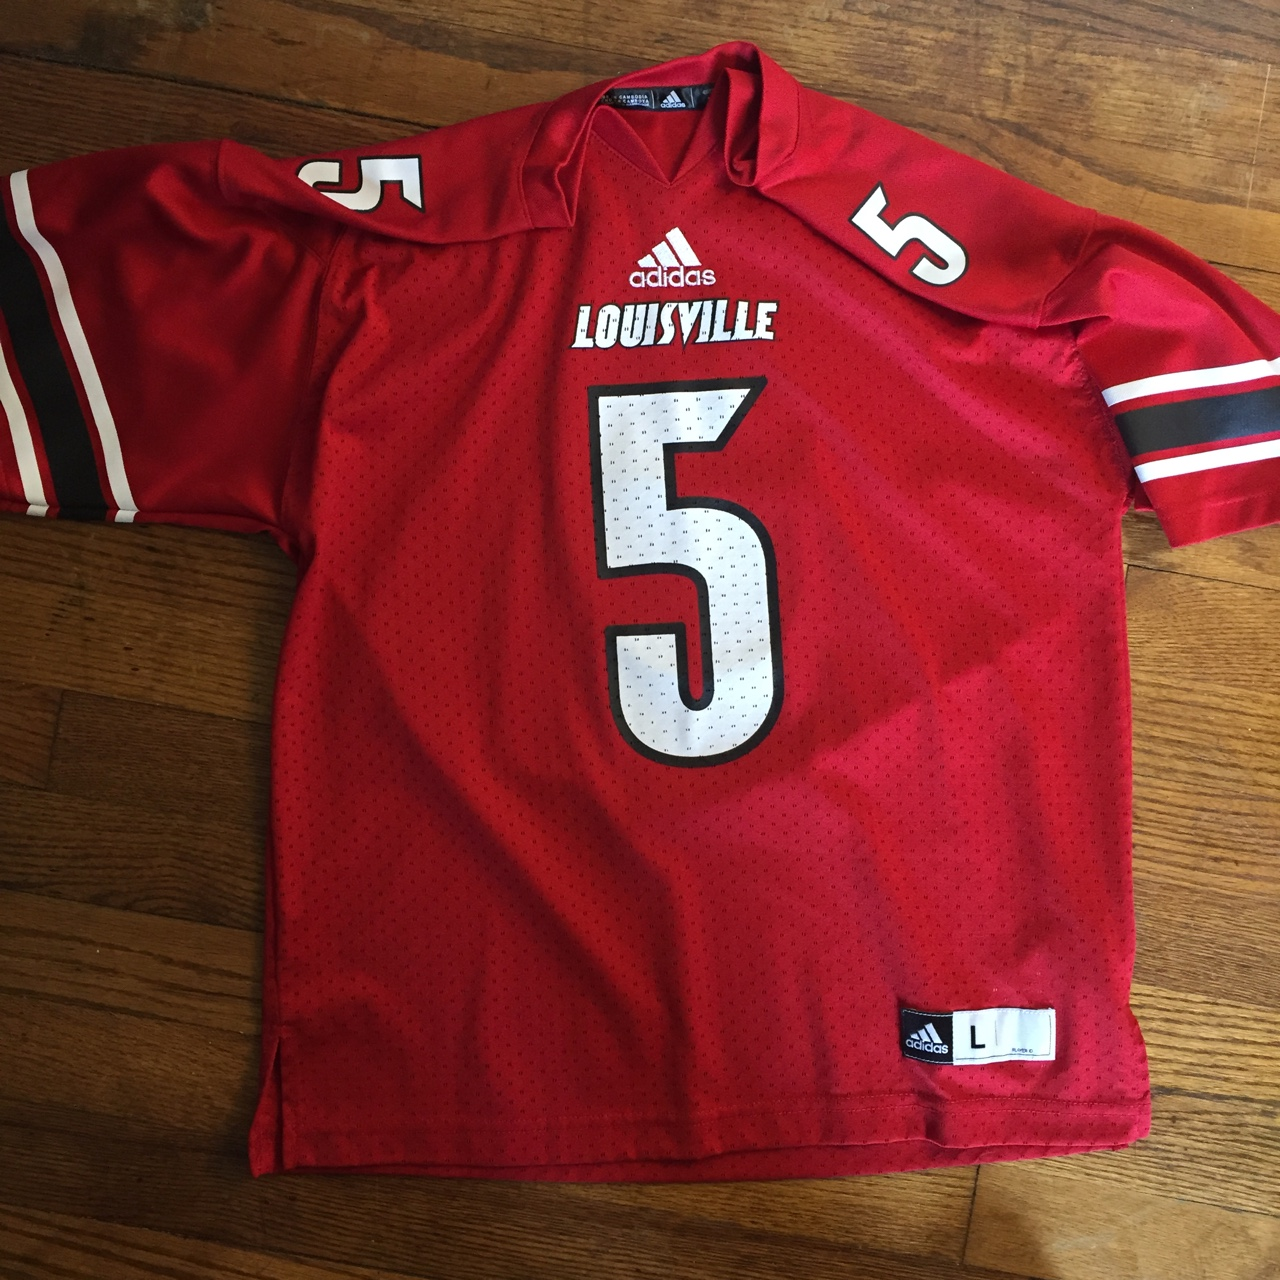 best sneakers fccbc 8fb9d Louisville Cardinals football jersey by Adidas.... - Depop